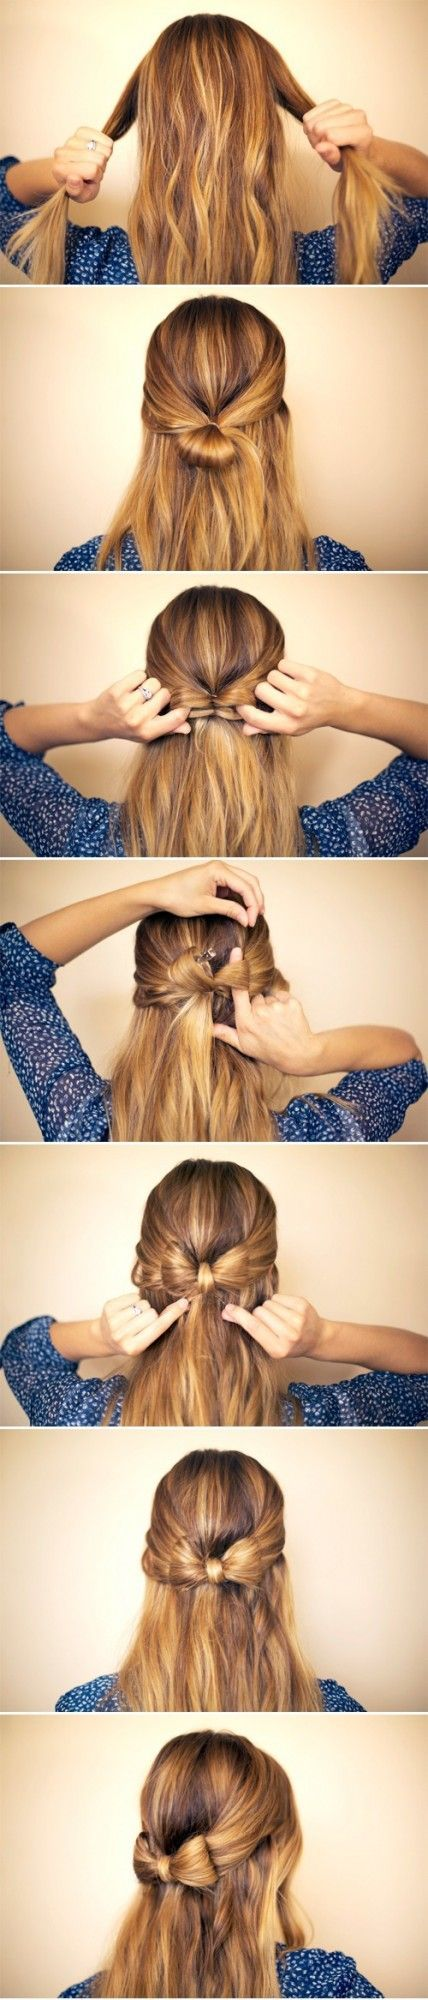 32 Amazing and Easy Hairstyles Tutorials for Hot  Make Up Nails easy hairstyles | hairstyles